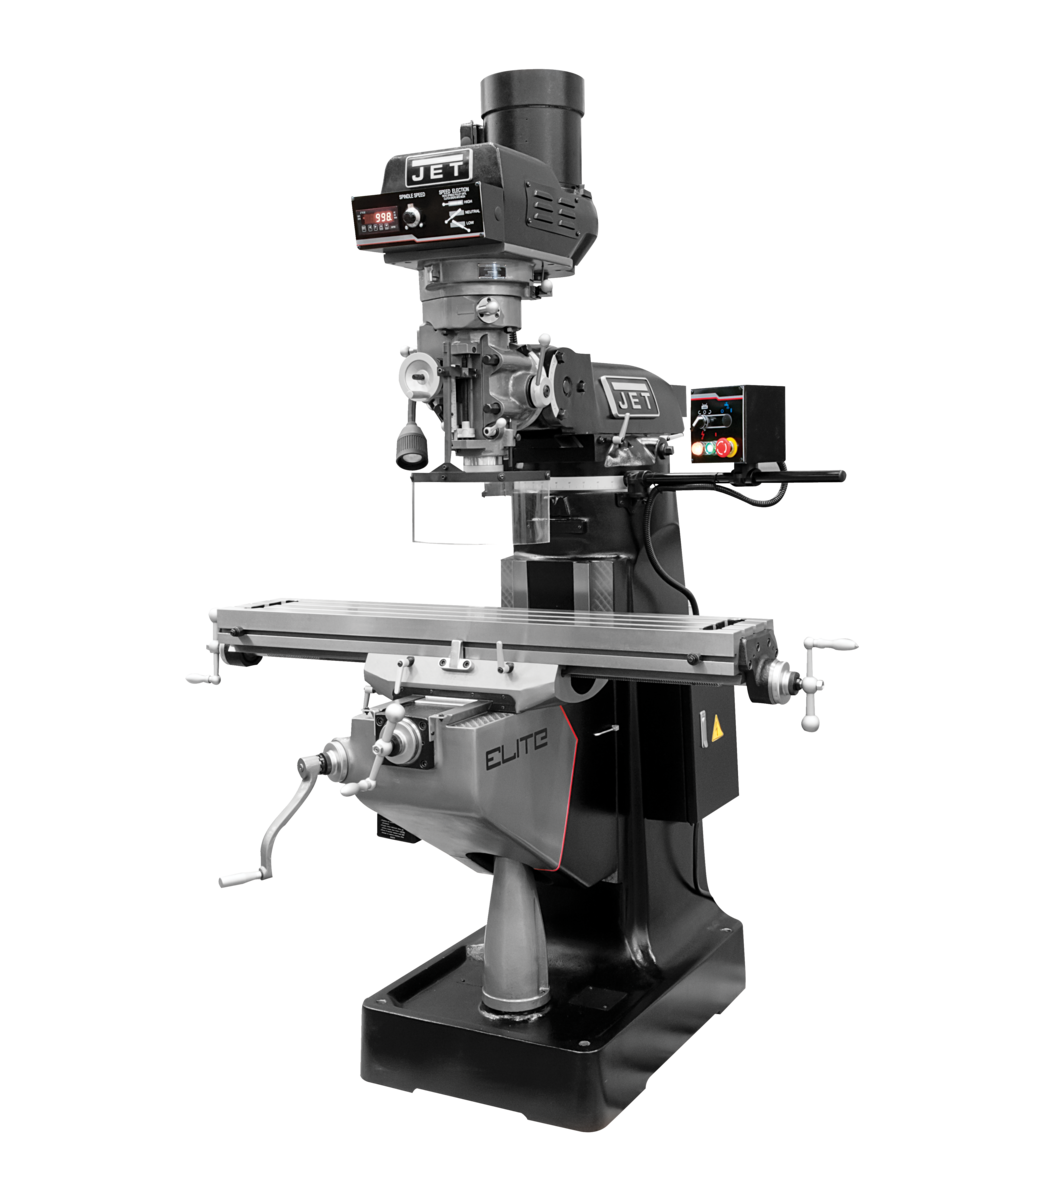 EVS-949 Mill with 3-Axis Newall DP700 (Quill) DRO and X-Axis JET Powerfeed